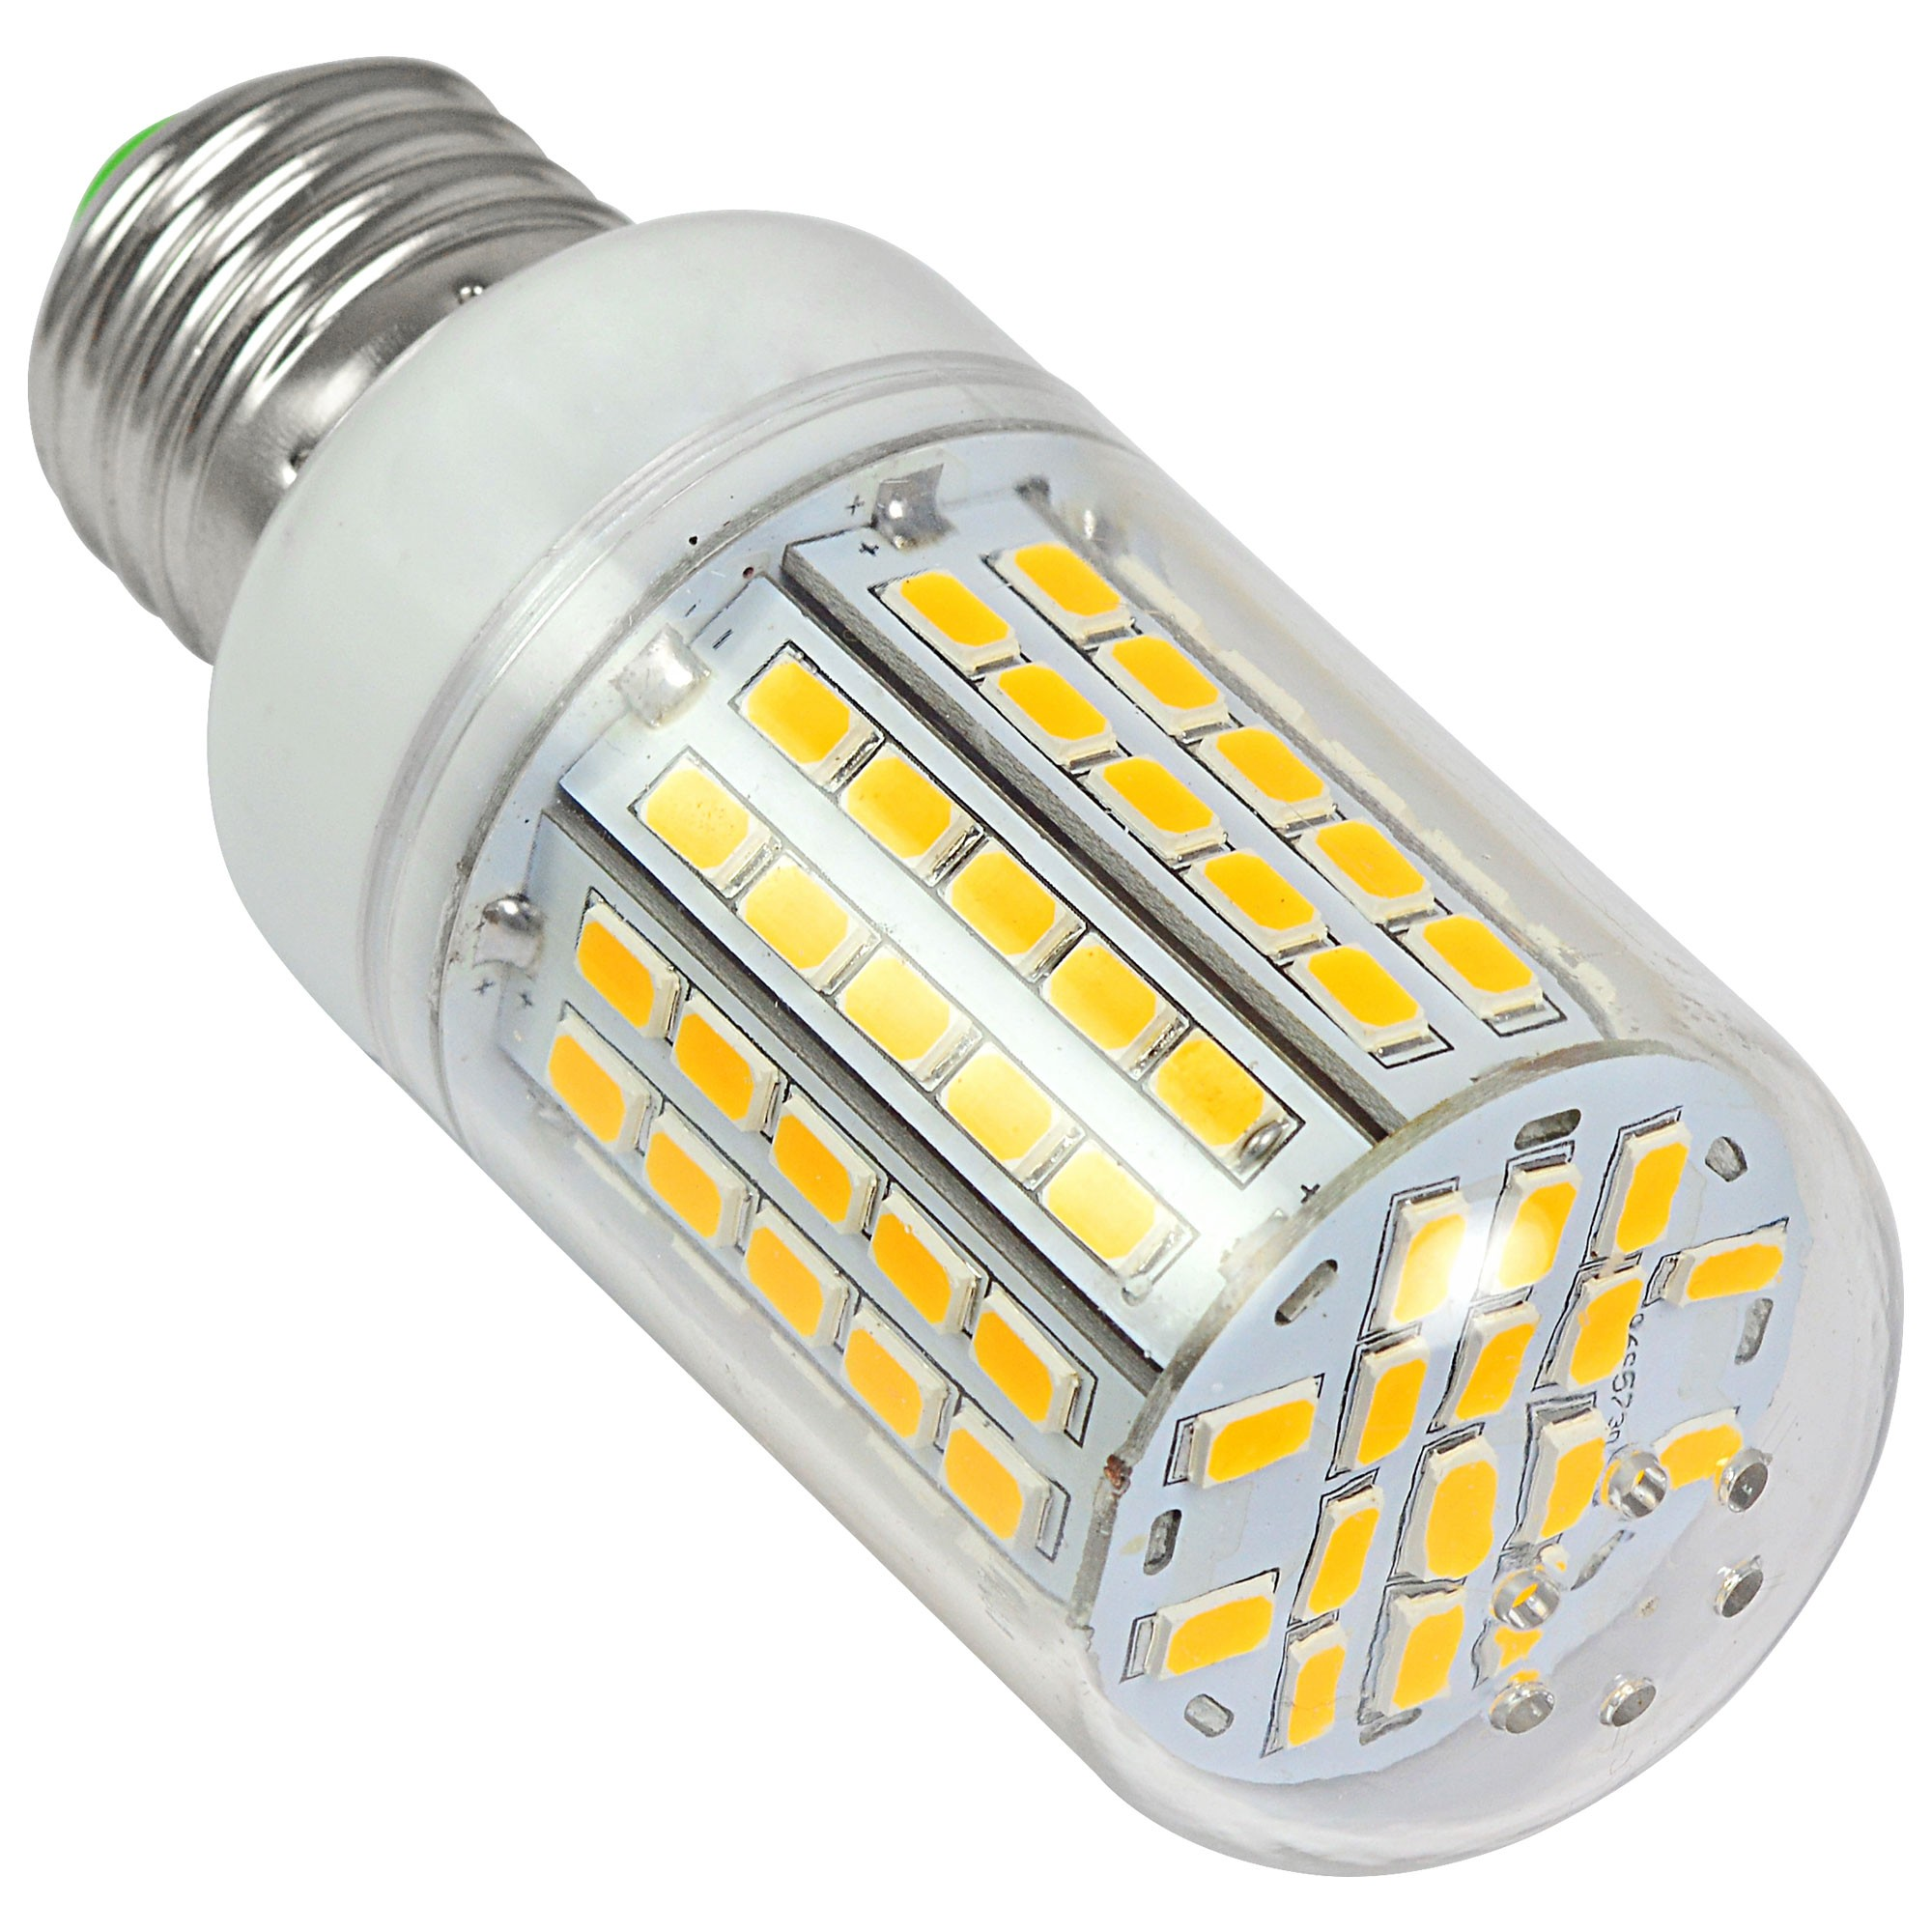 Mengsled mengs e27 15w led corn light 96x 5730 smd leds led mengs e27 15w led corn light 96x 5730 smd leds led bulb lamp in warm whitecool white energy saving light parisarafo Image collections